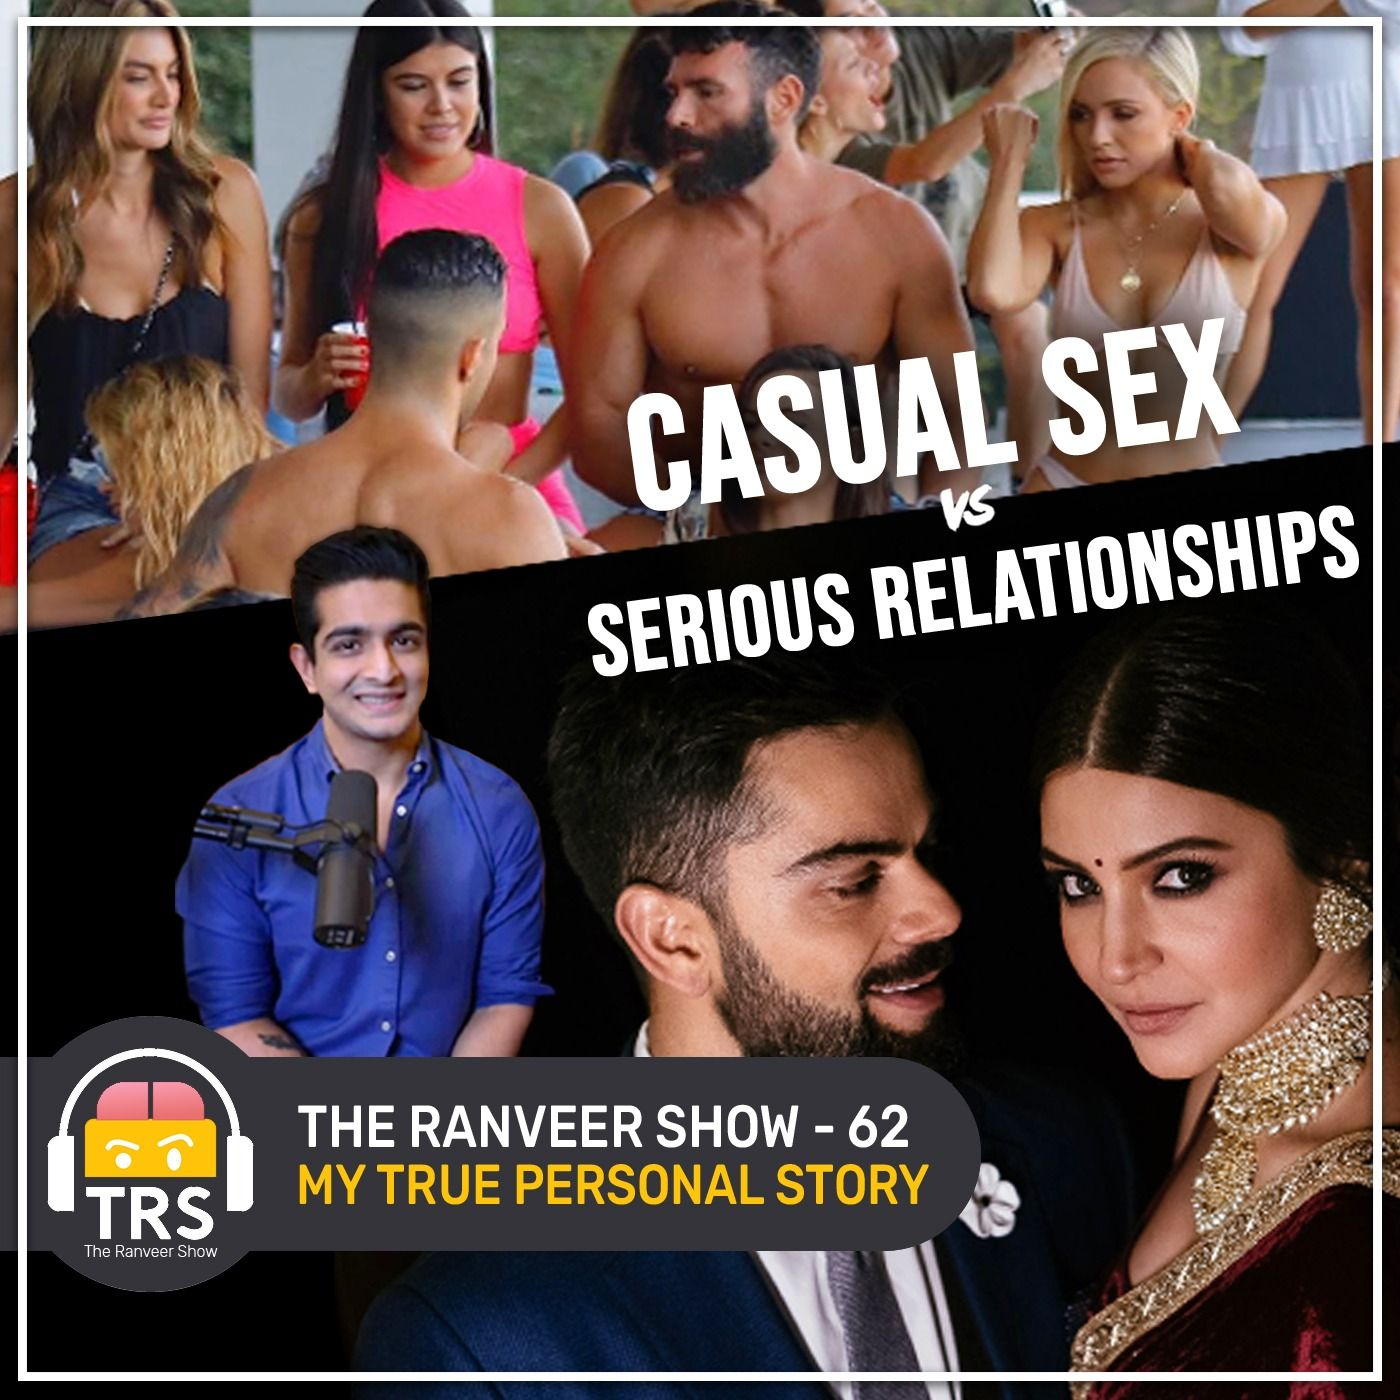 Casual Sex Vs. Serious Relationships - My True Personal Story | The Ranveer Show 62